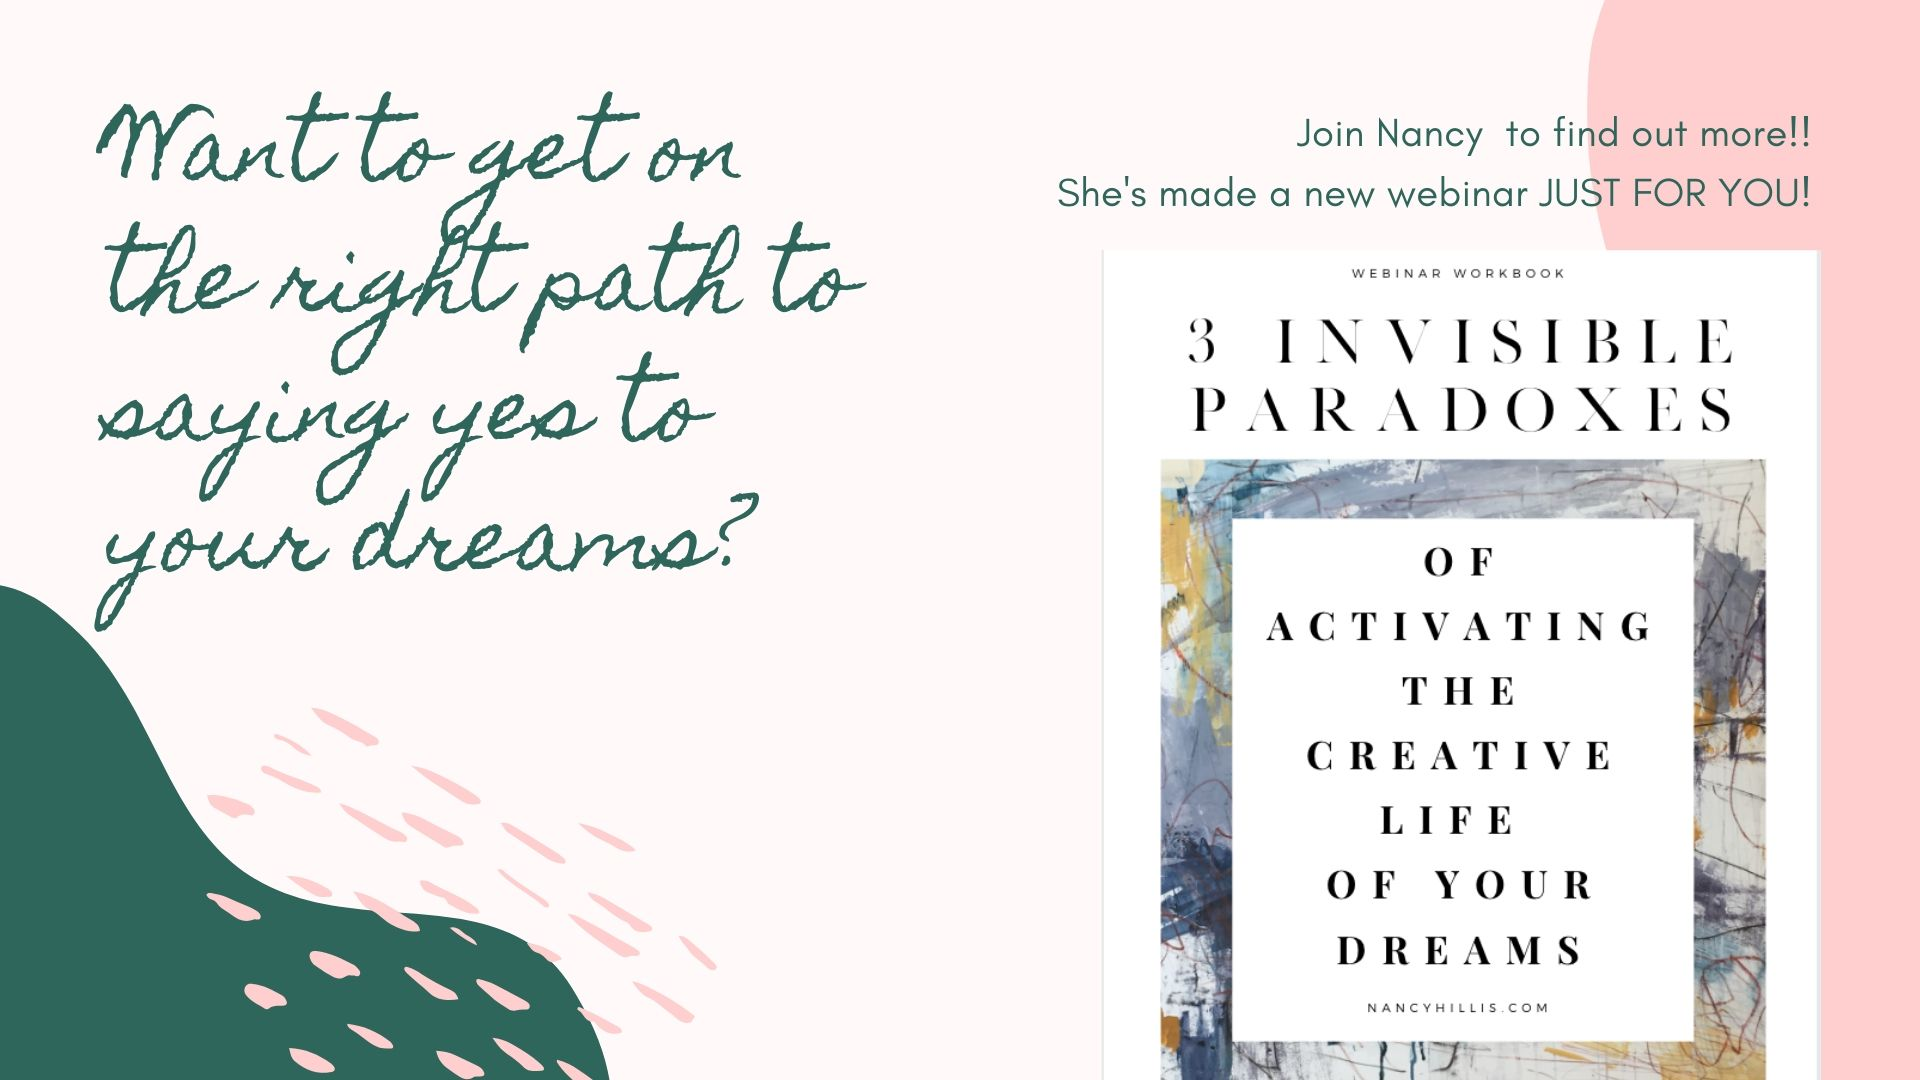 New webinar: 3 Invisible Paradoxes To Activating The Creative Life Of Your Dreams